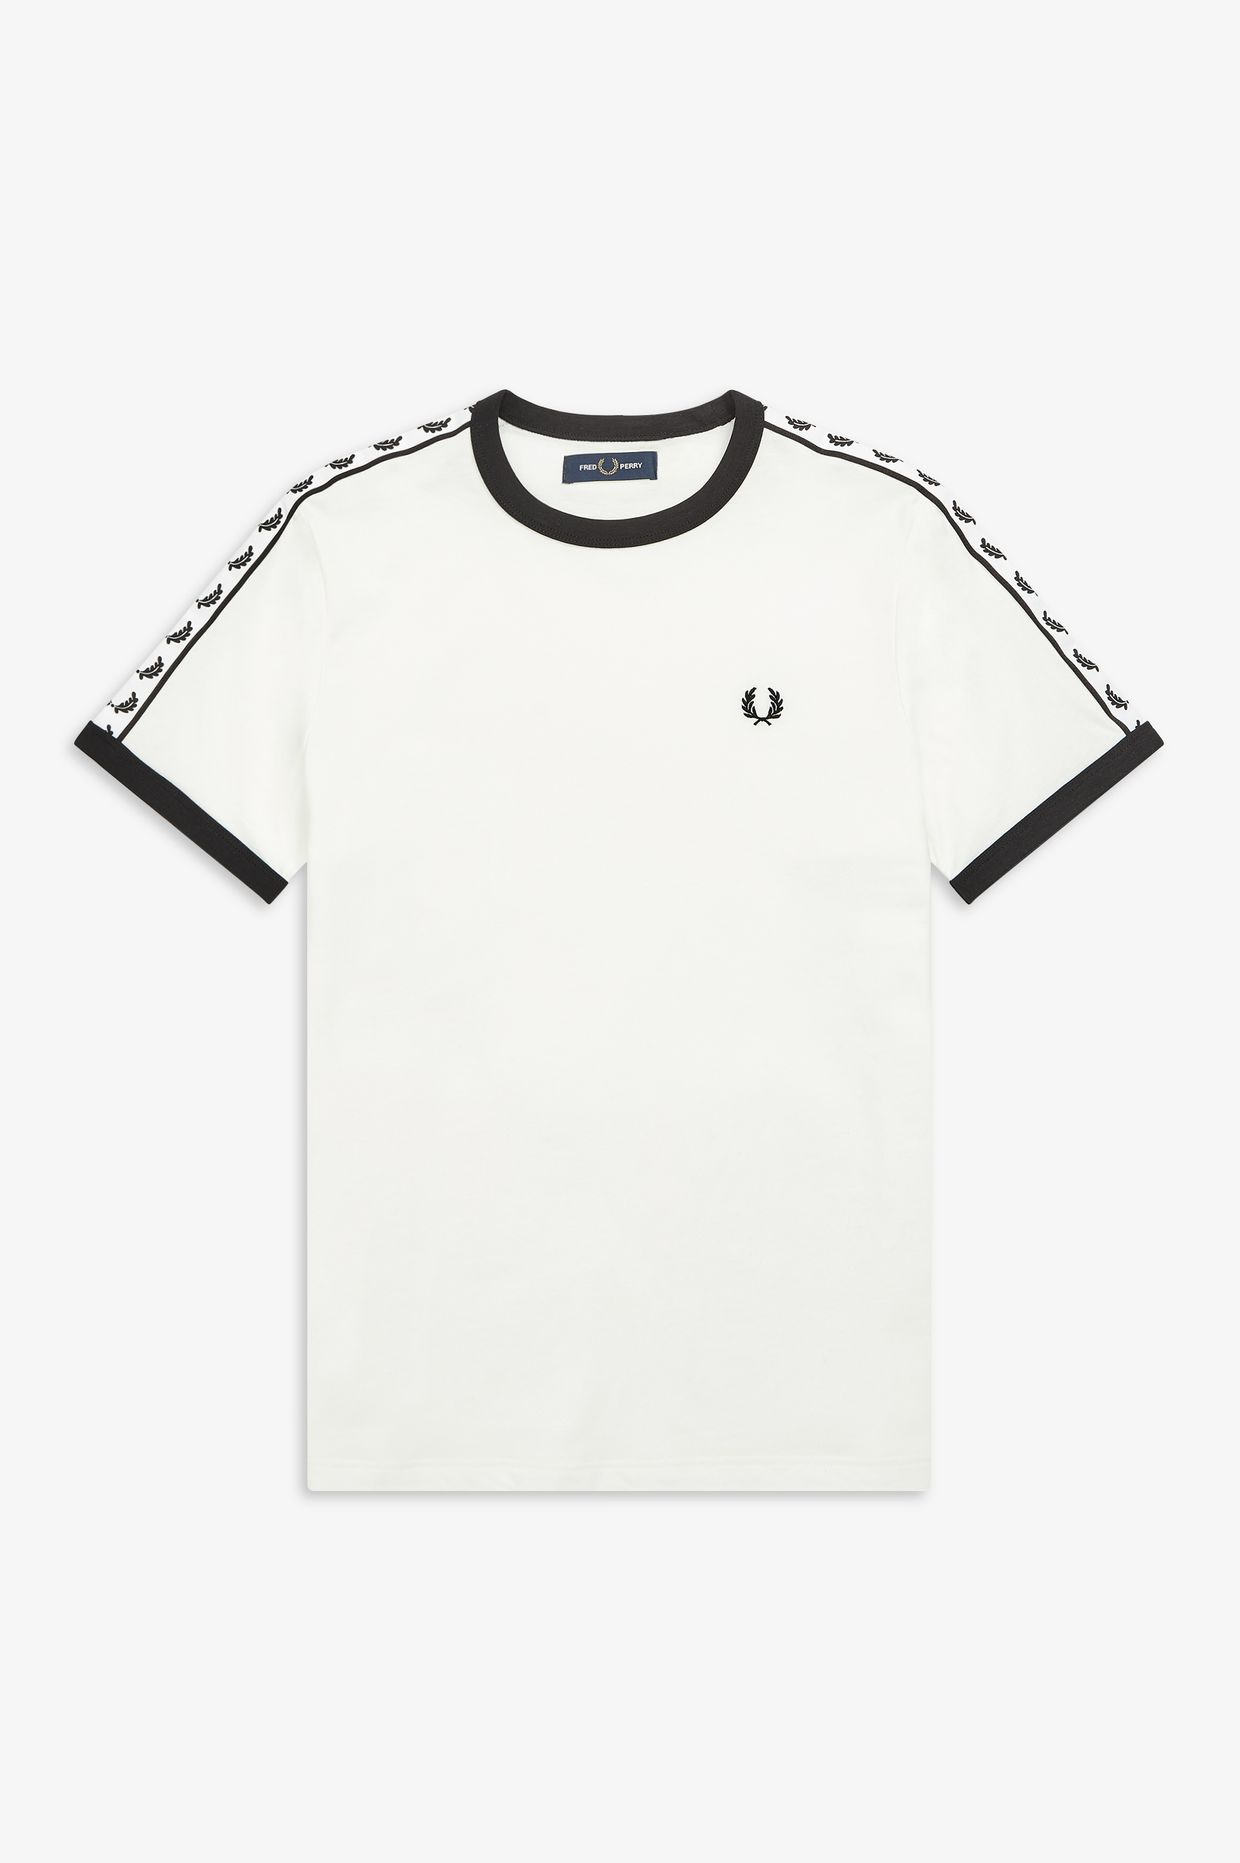 T-shirt, Fred Perry, €55